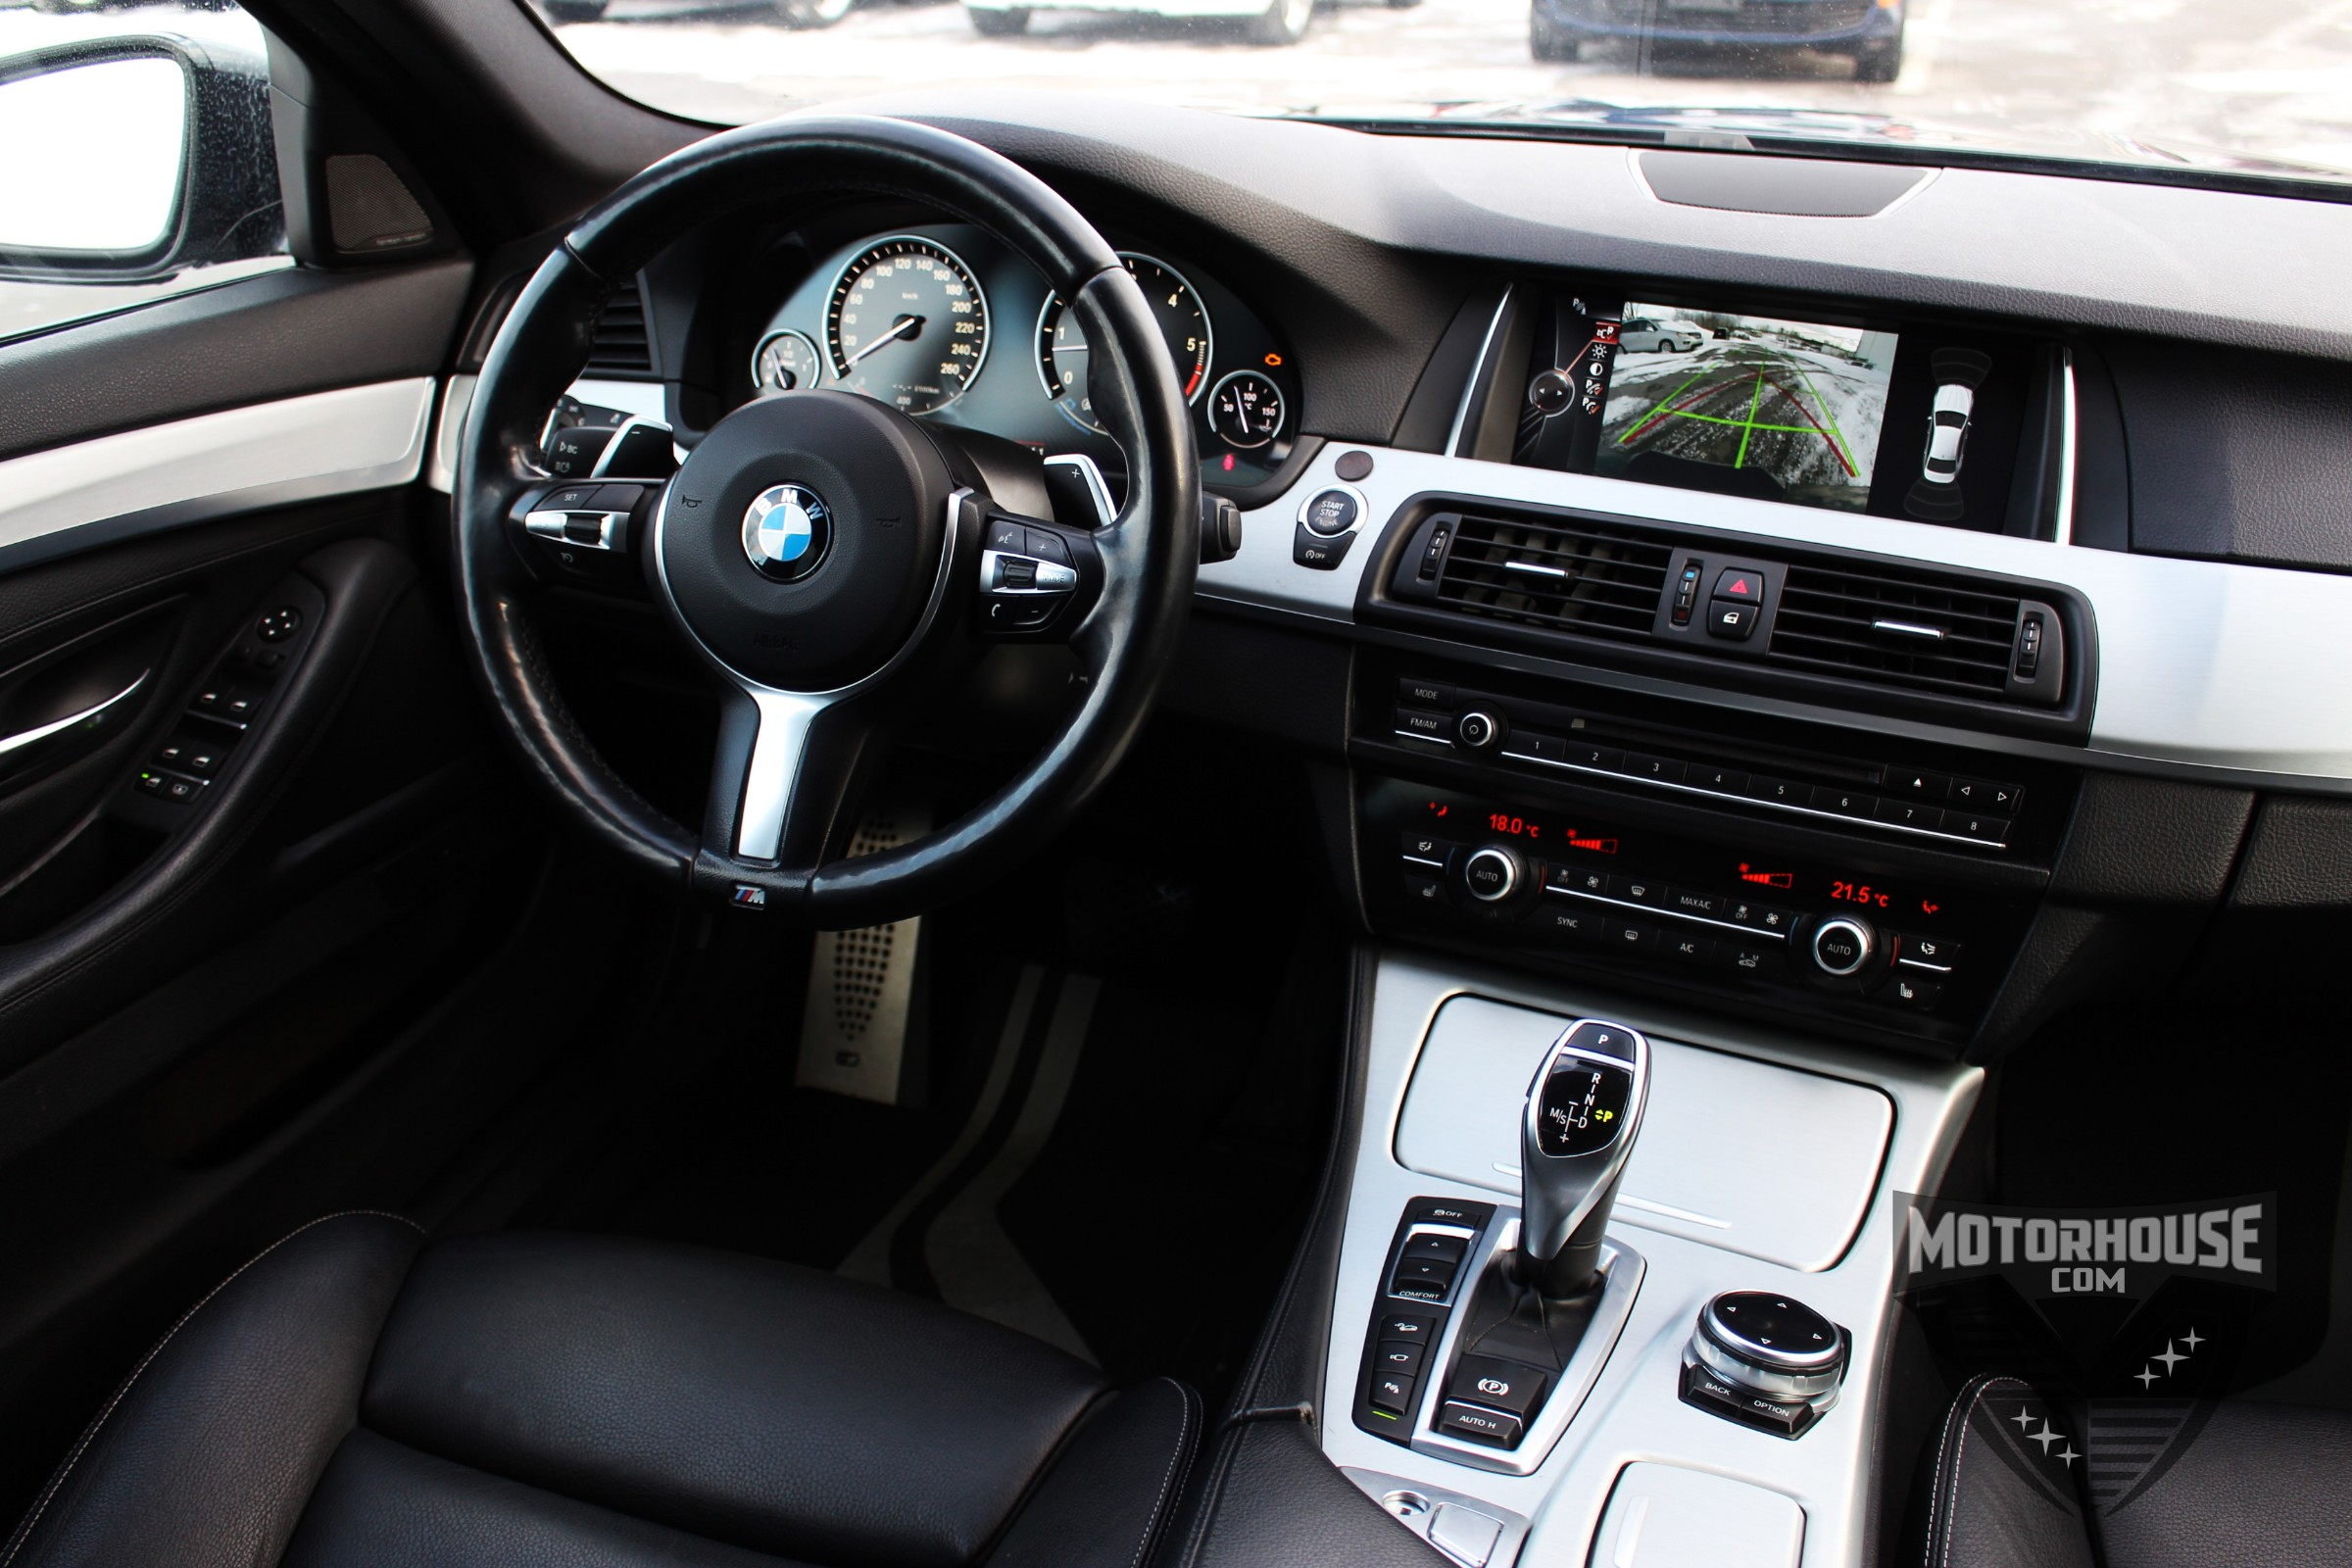 2014 BMW 535d xDrive (Stk: 1641) in Carleton Place - Image 21 of 31